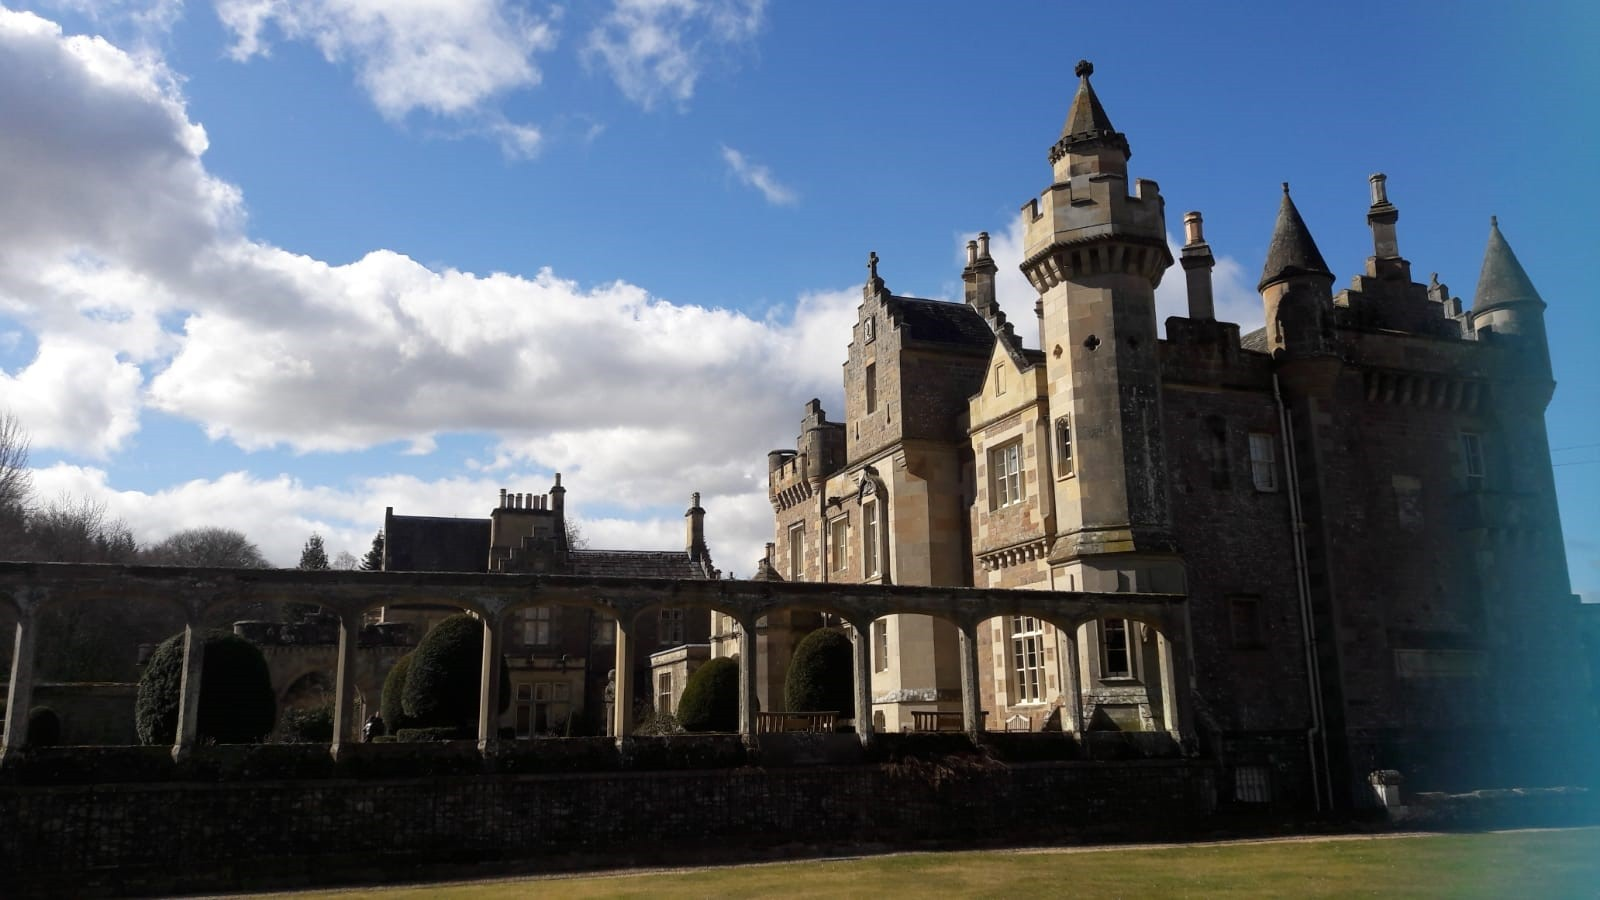 Abbotsford, the home of Sir Walter Scott